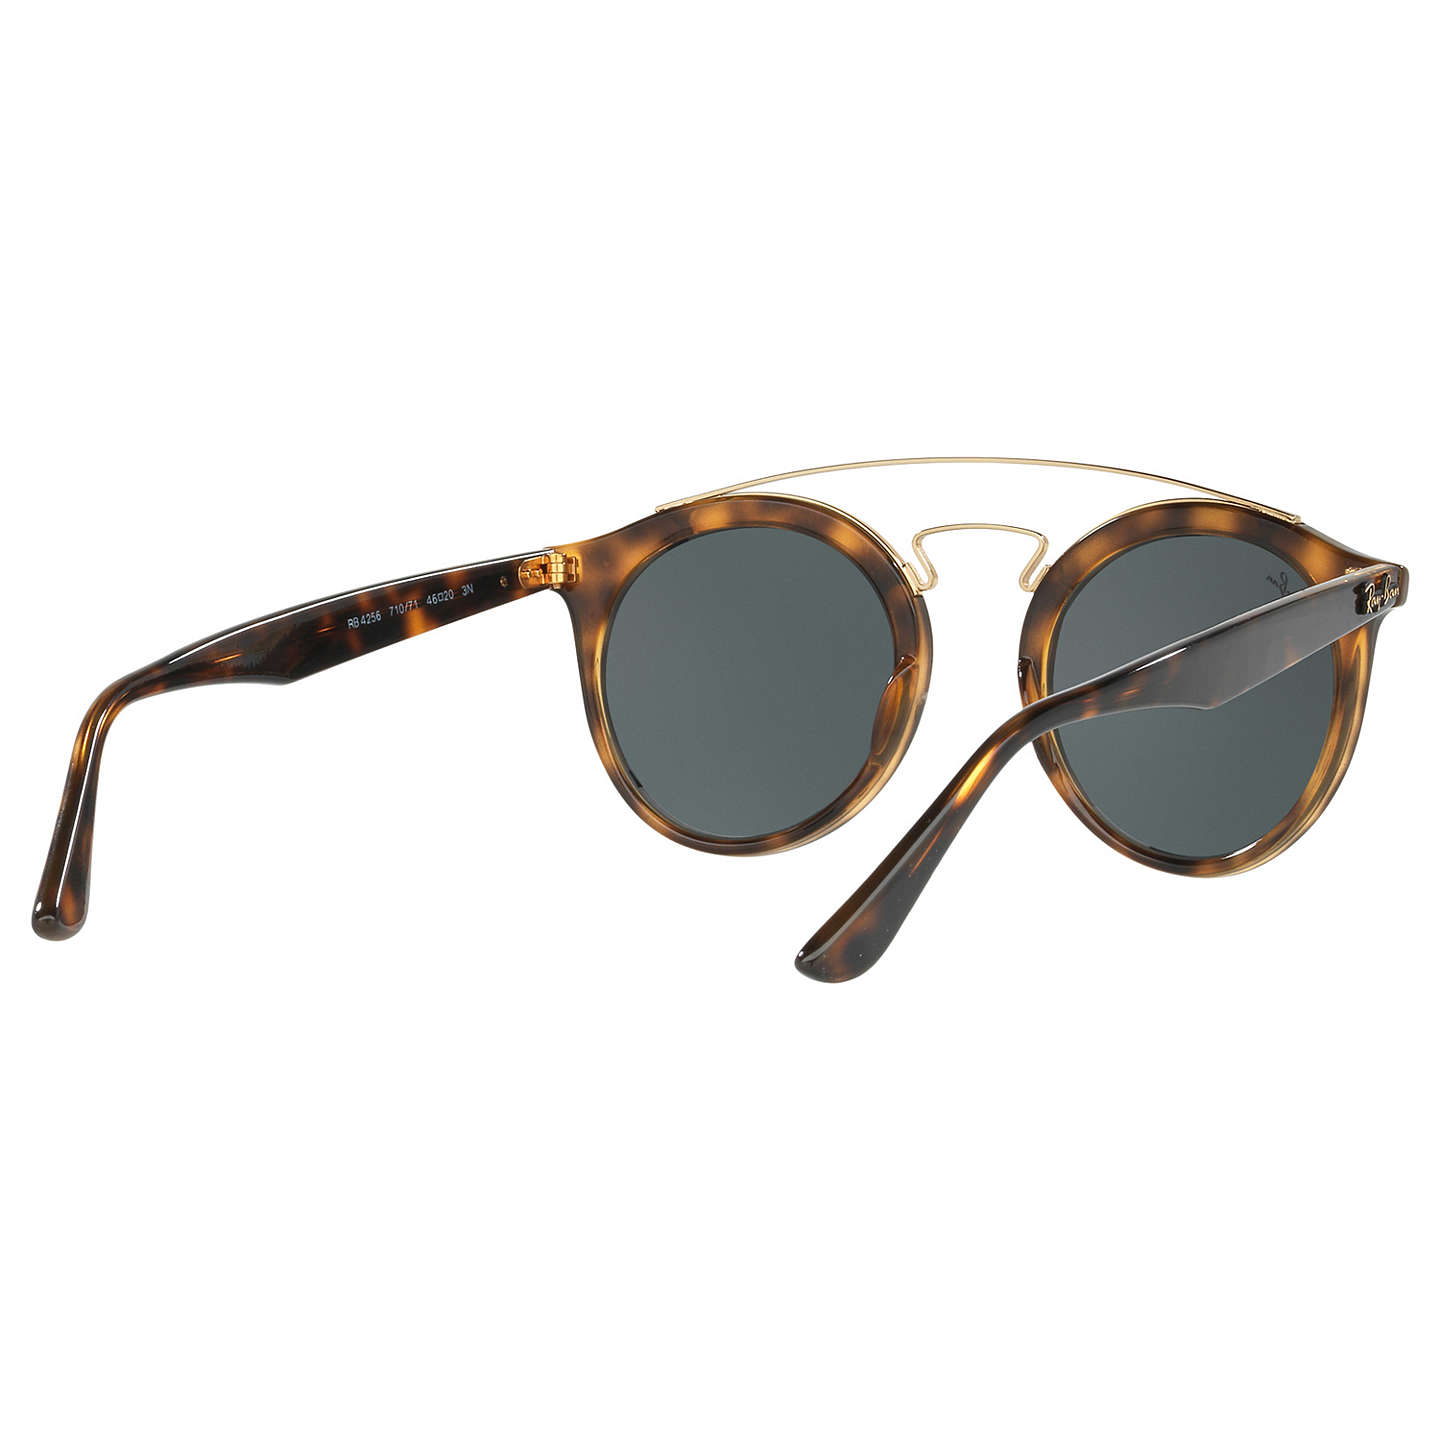 BuyRay-Ban RB4256 Round Sunglasses, Tortoise/Grey Online at johnlewis.com